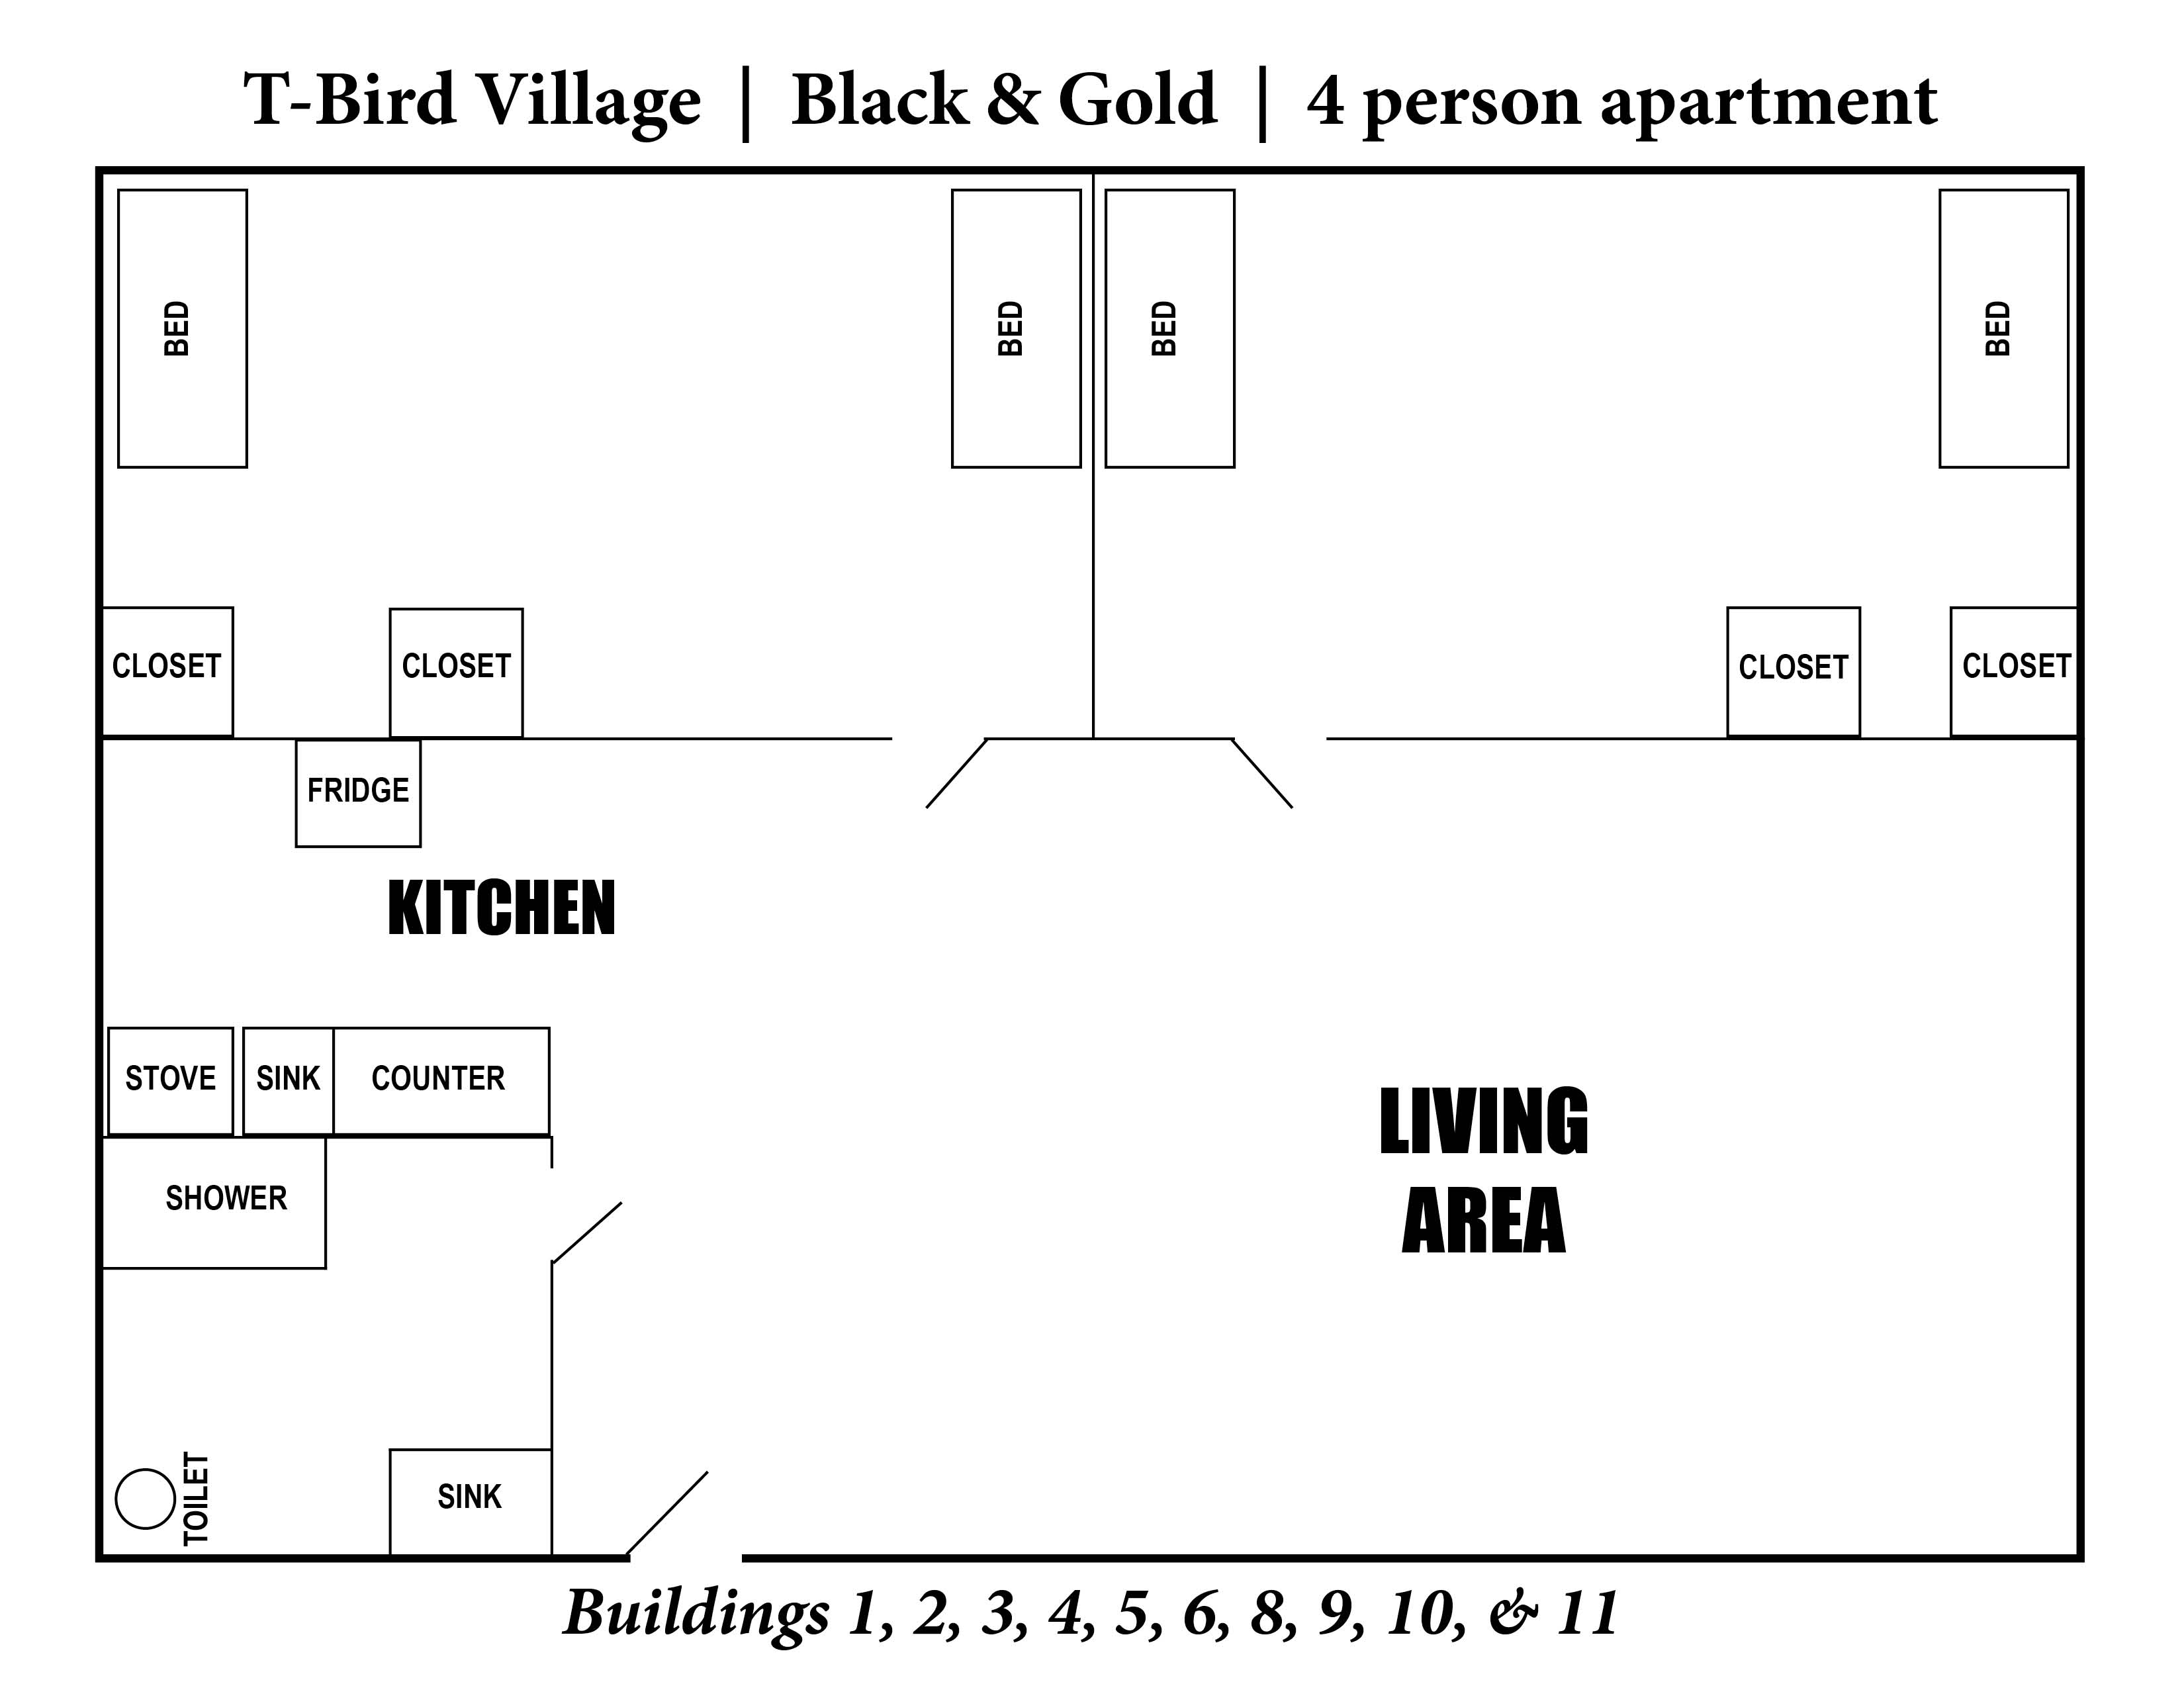 A photo of the layout of T-Bird Village 4 person apartment.